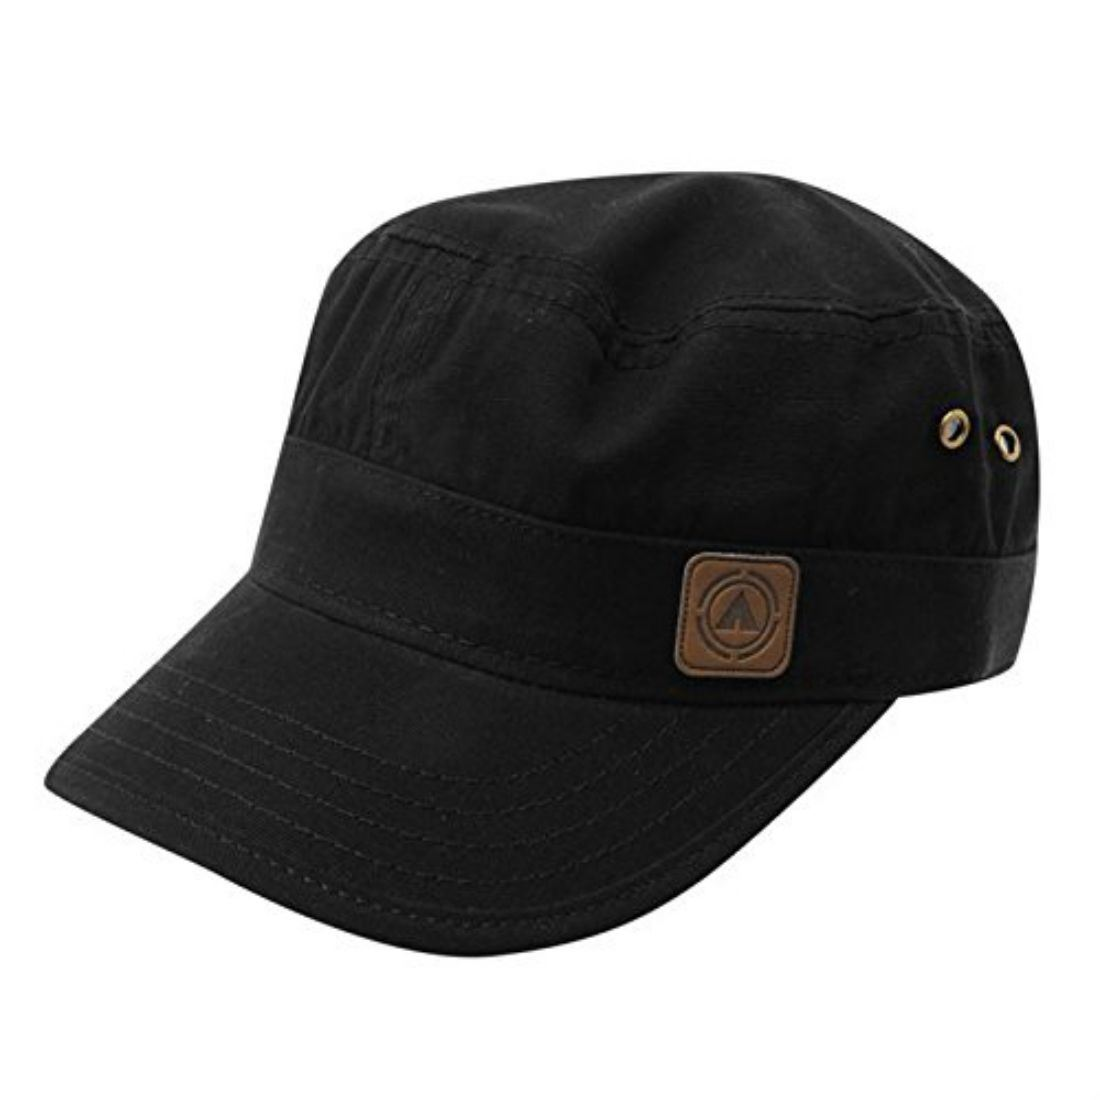 Shop quality Men's Casual Hats at Country Outfitter for hard to beat prices. You'll find your country when you shop Country Outfitter today!